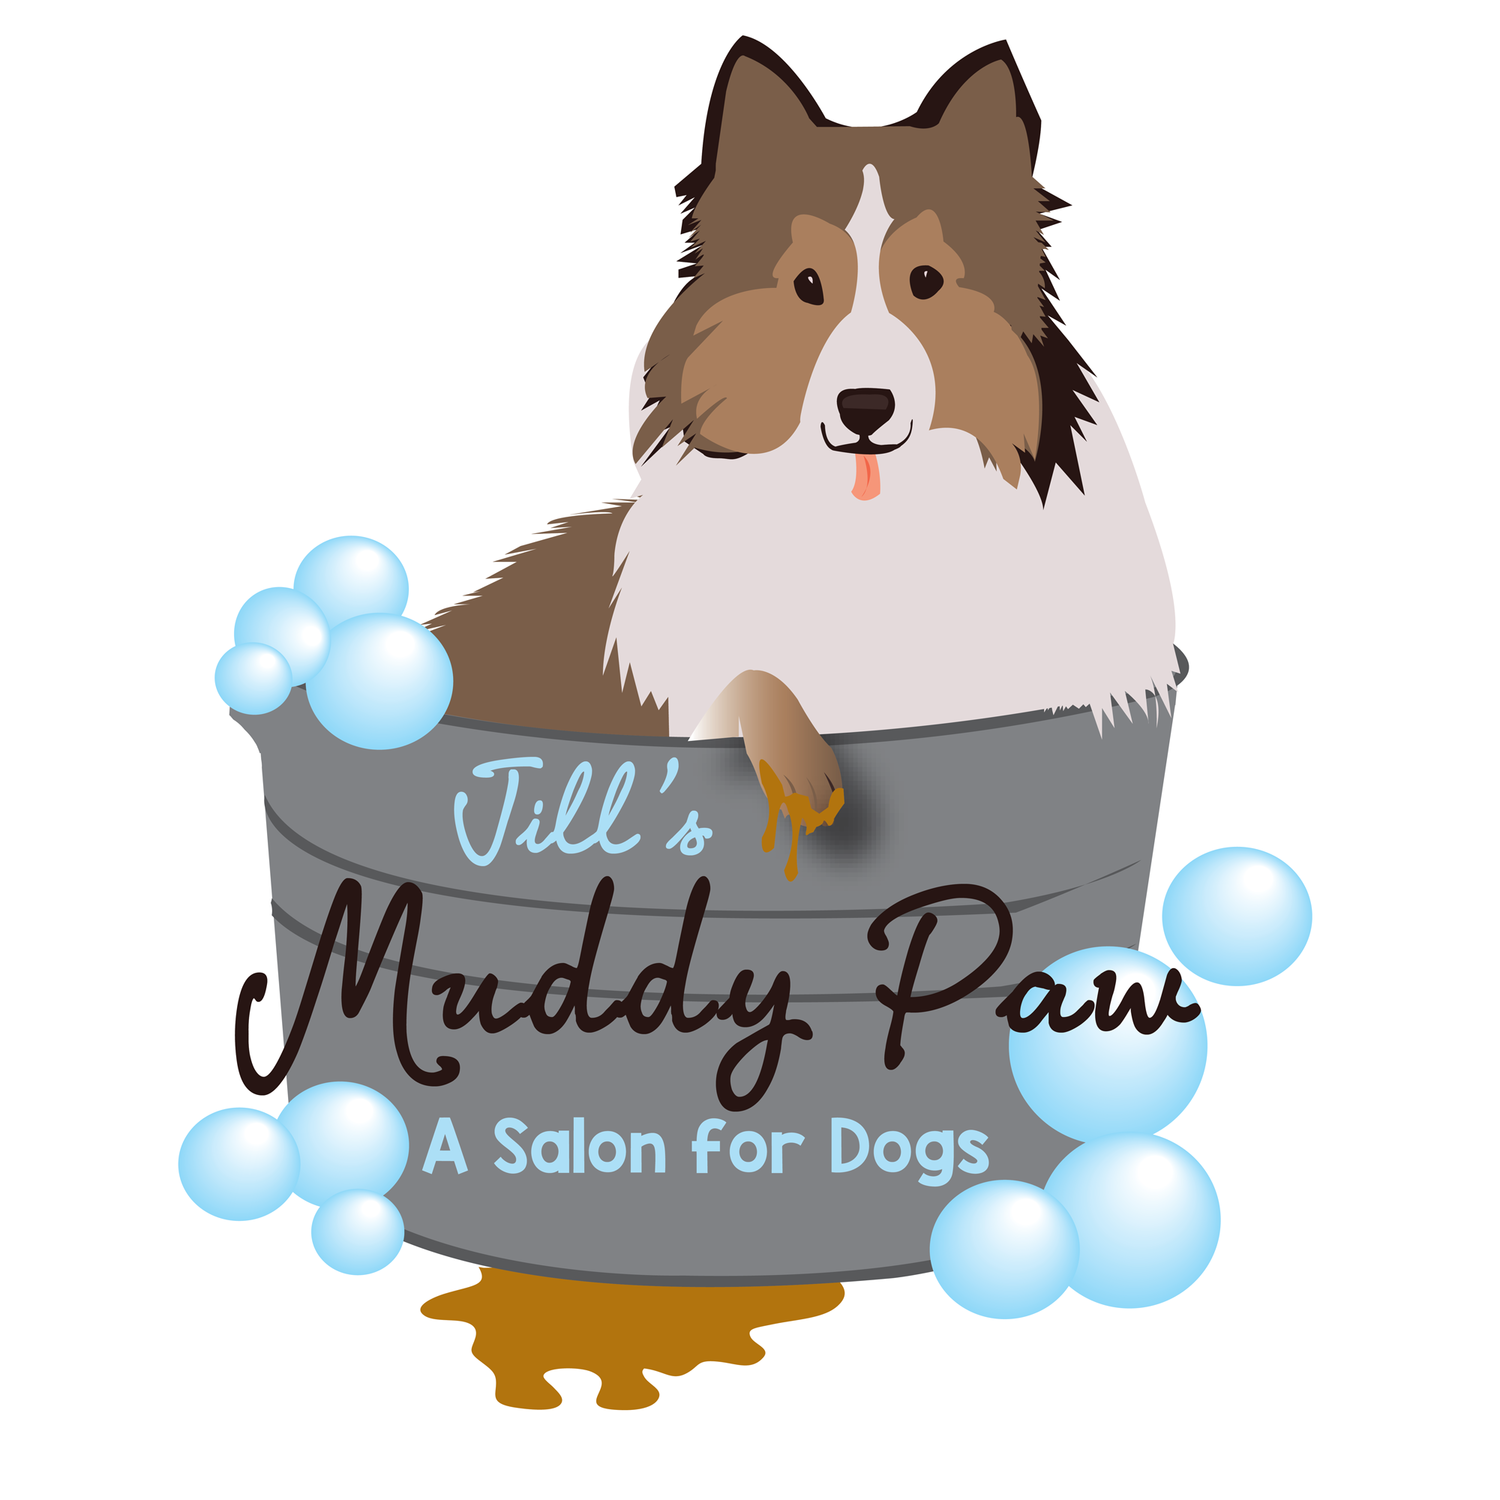 Jill's Muddy Paw Dog Grooming